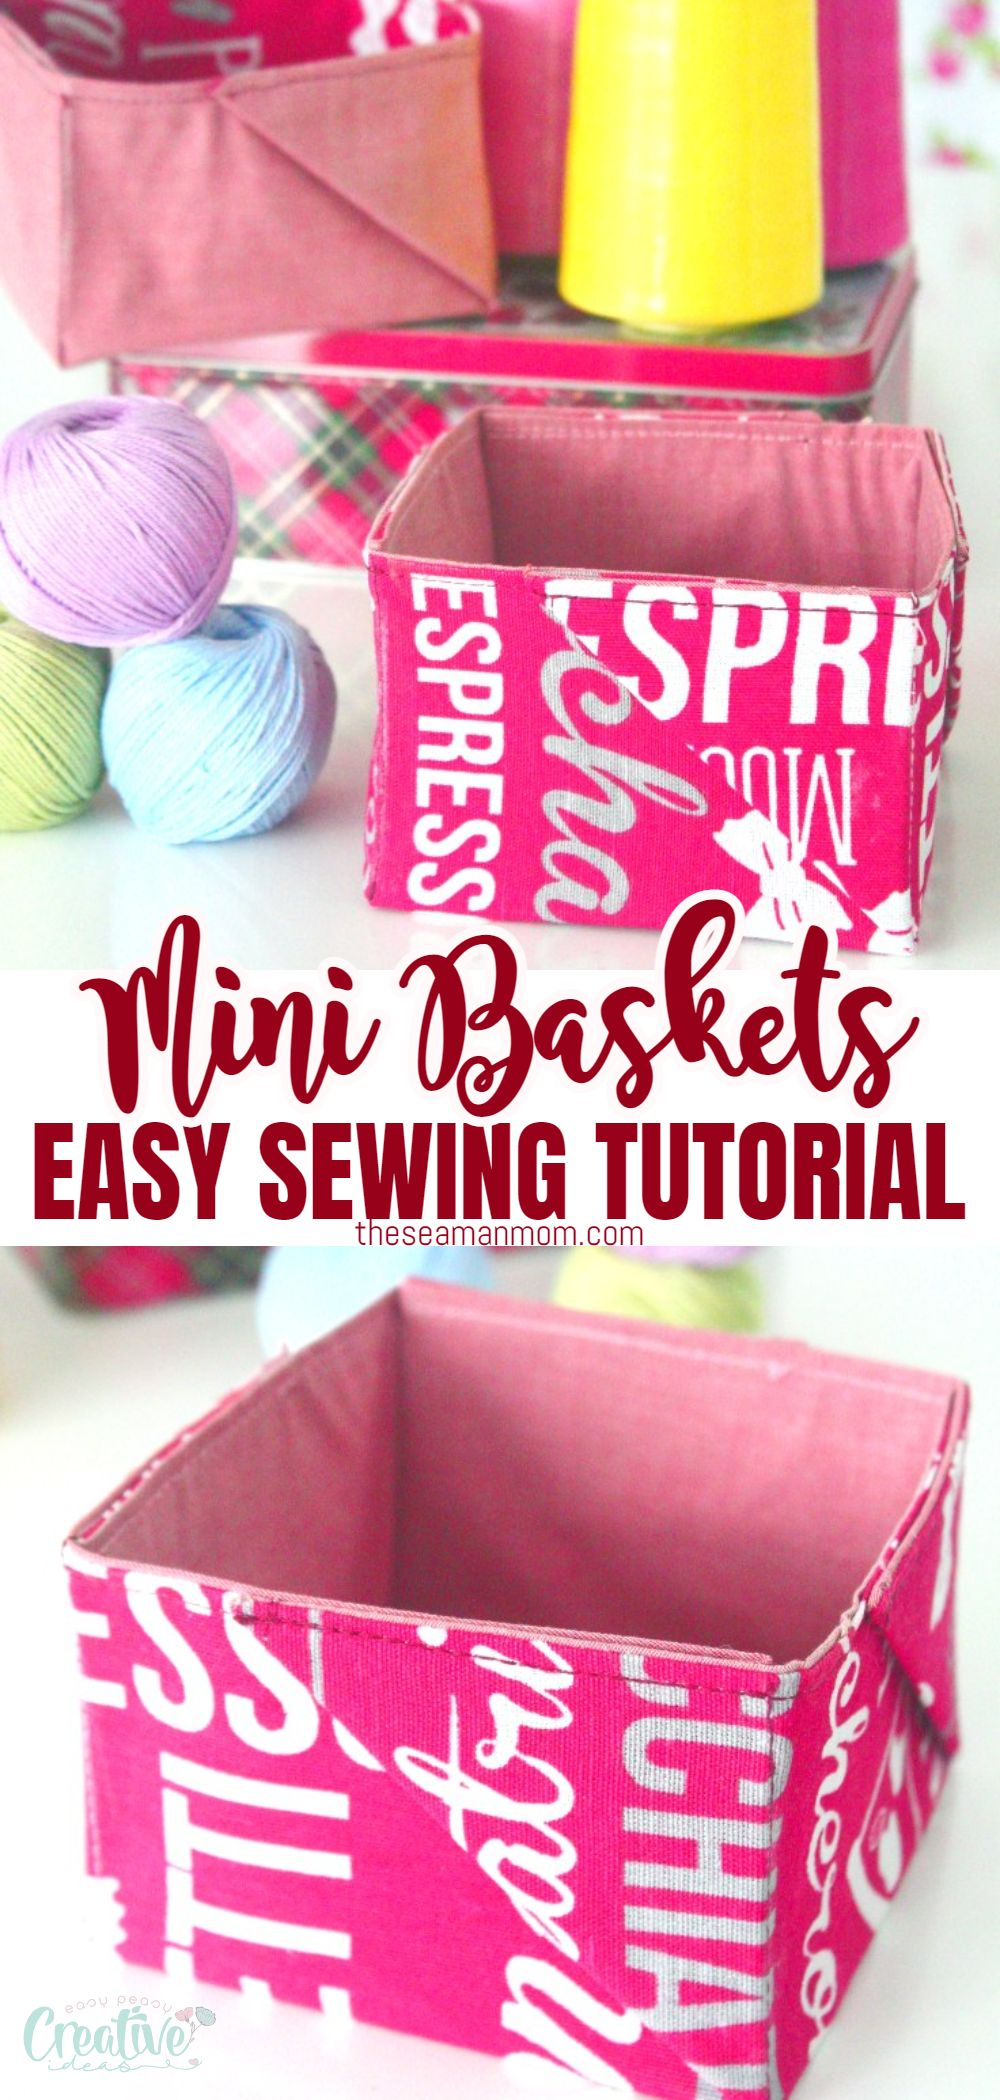 """Everyone needs to organize various items around the house, so we're in constant need of boxes, baskets, bags or any other storing solution. Today I'm going to show you a fabulous fabric baskets tutorial where I make super cute and easy mini """"pinwheel"""" baskets with fabric, to store smaller stuff like sewing notions or makeup, small toys, hair accessories etc. via @petroneagu"""